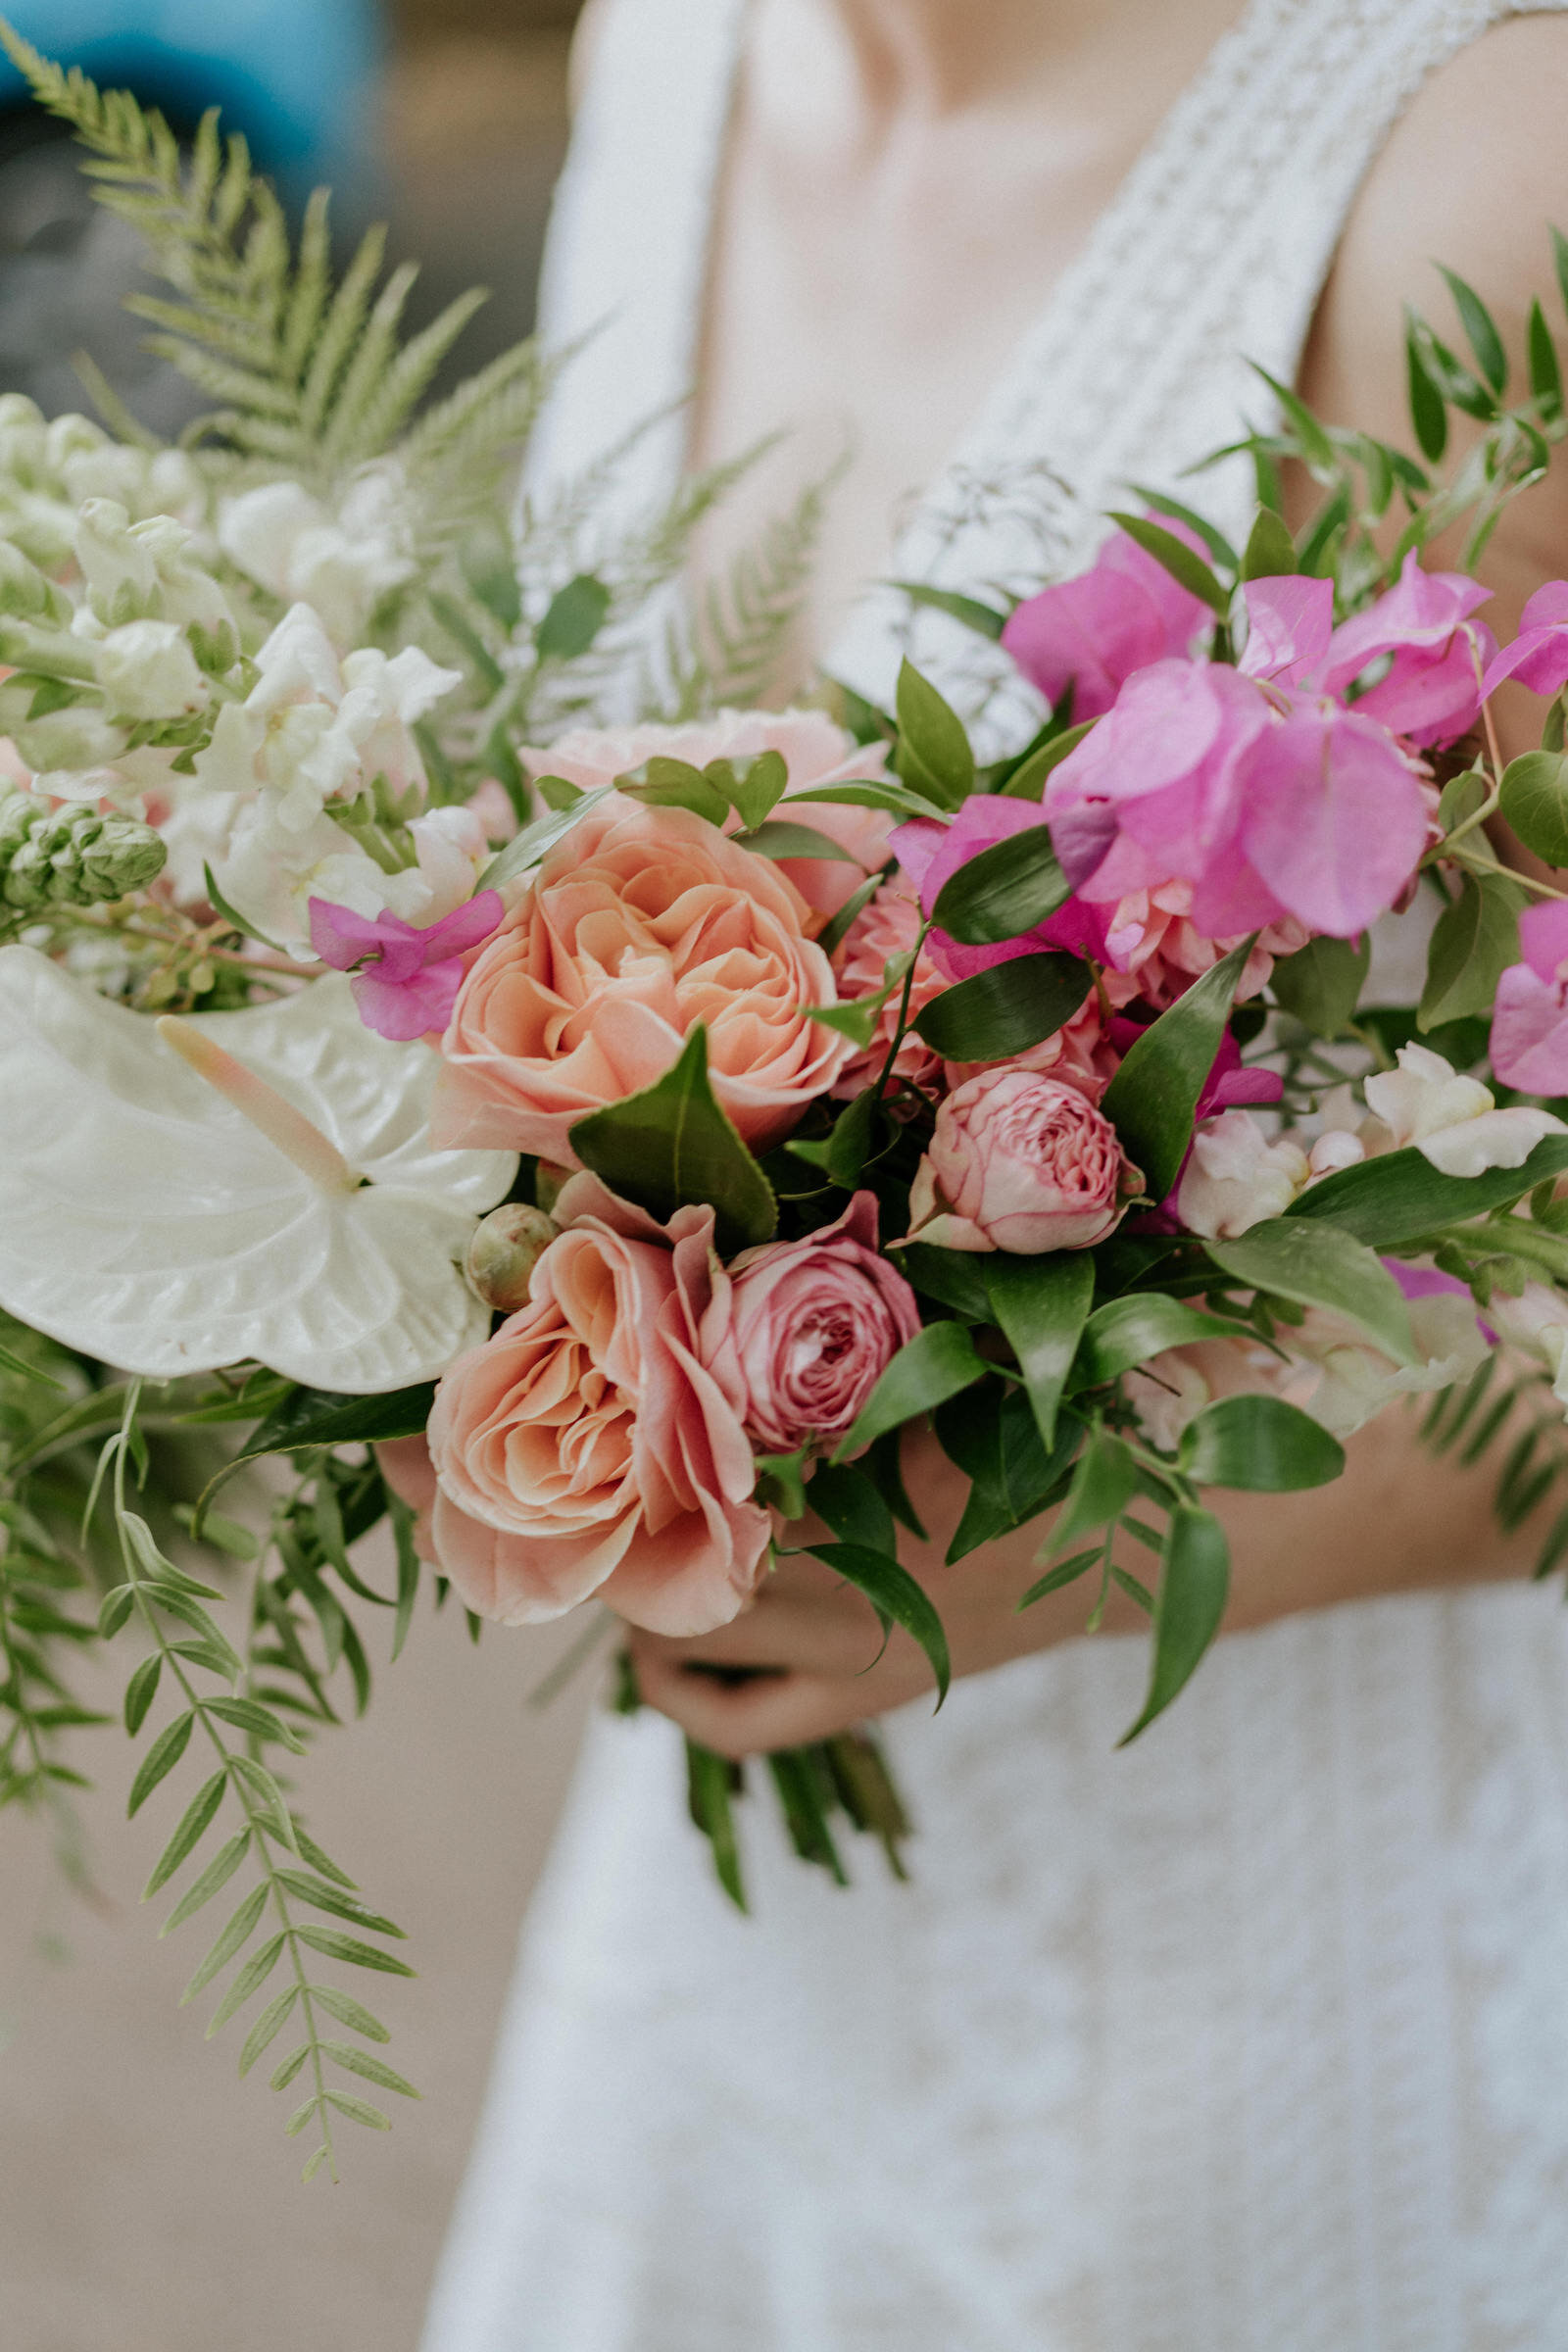 Beija Flor tropical brides bouquet with bougainvillea and anthuriums, photo by James Day